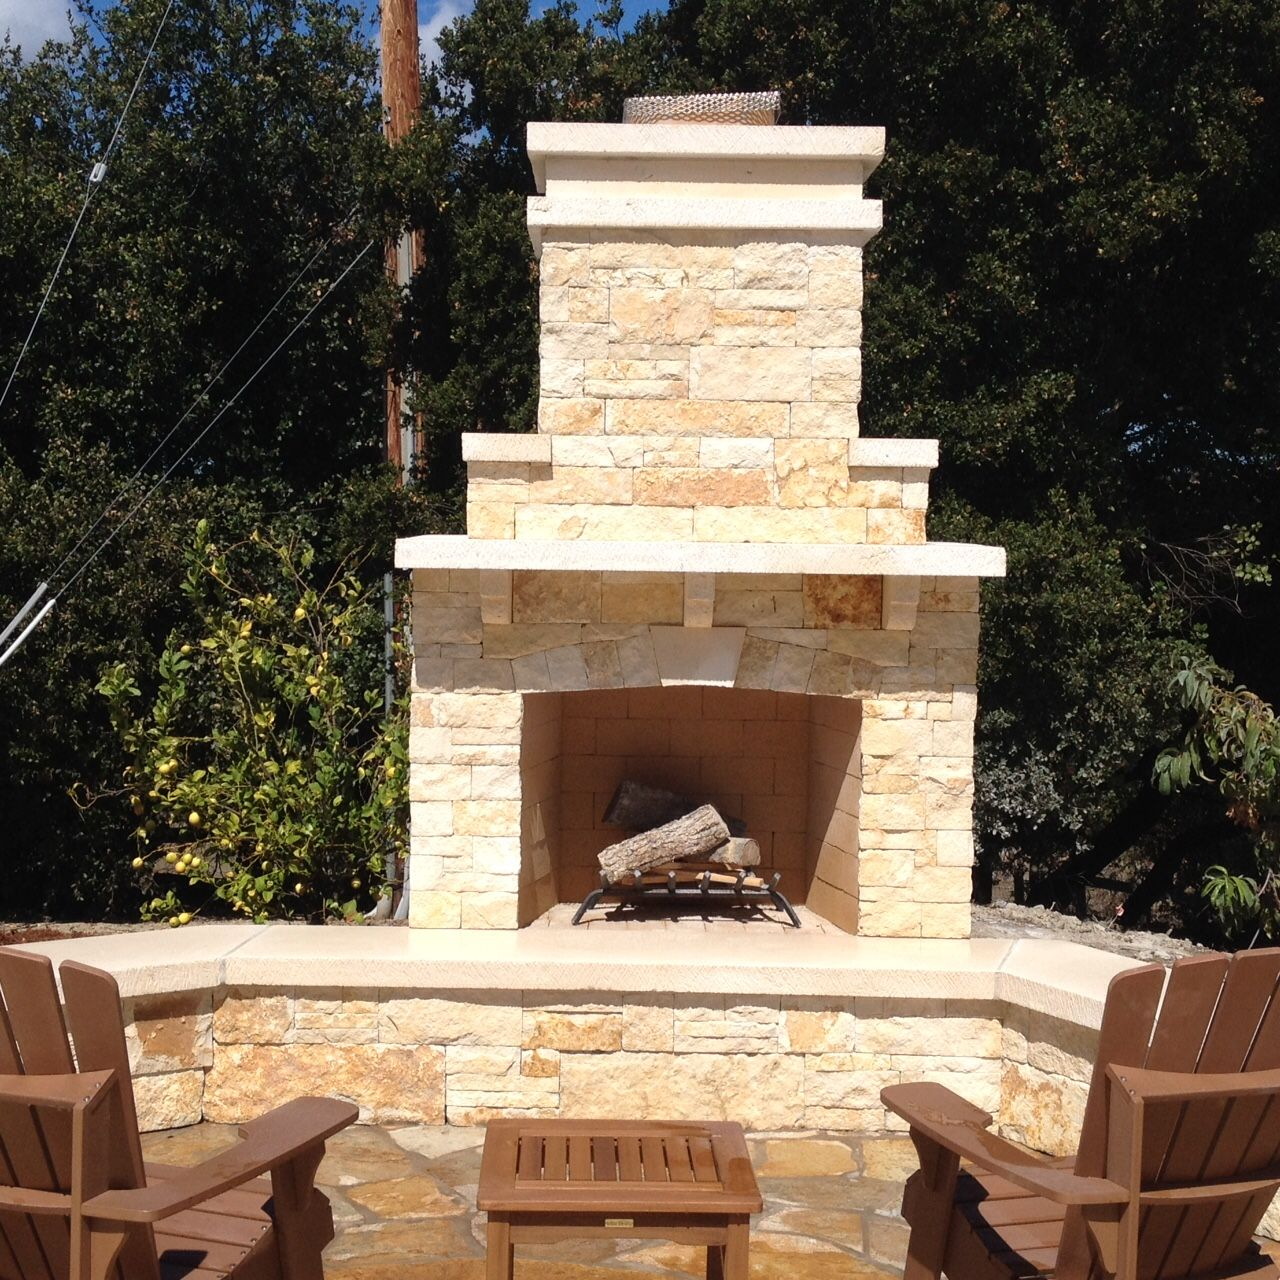 Custom designed outdoor fireplace with seated area, stone mantel and storage.